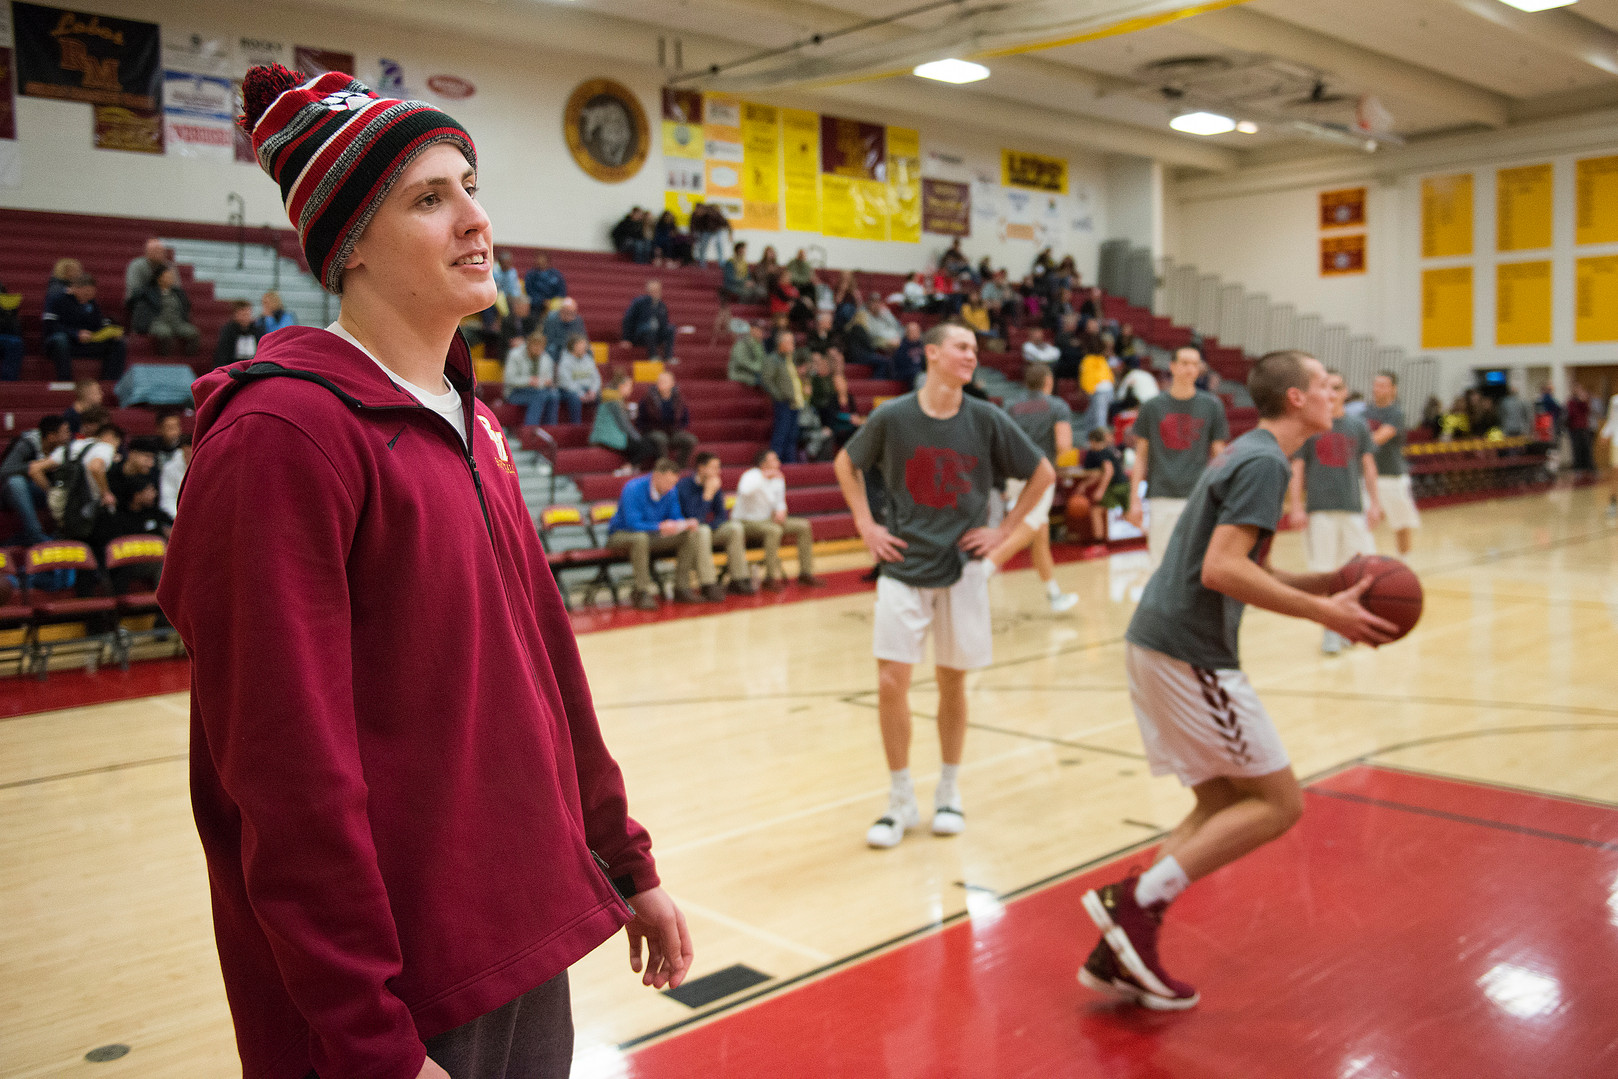 Carter Edgerley watches while the Lobos warm up before taking on Greeley West on Tuesday, January 8, 2019. Carter, a senior at Rocky Mountain High School, was diagnosed with cancer in December and has received an outpour of support from friends, family and teachers. AUSTIN HUMPHREYS/THE COLORADOAN